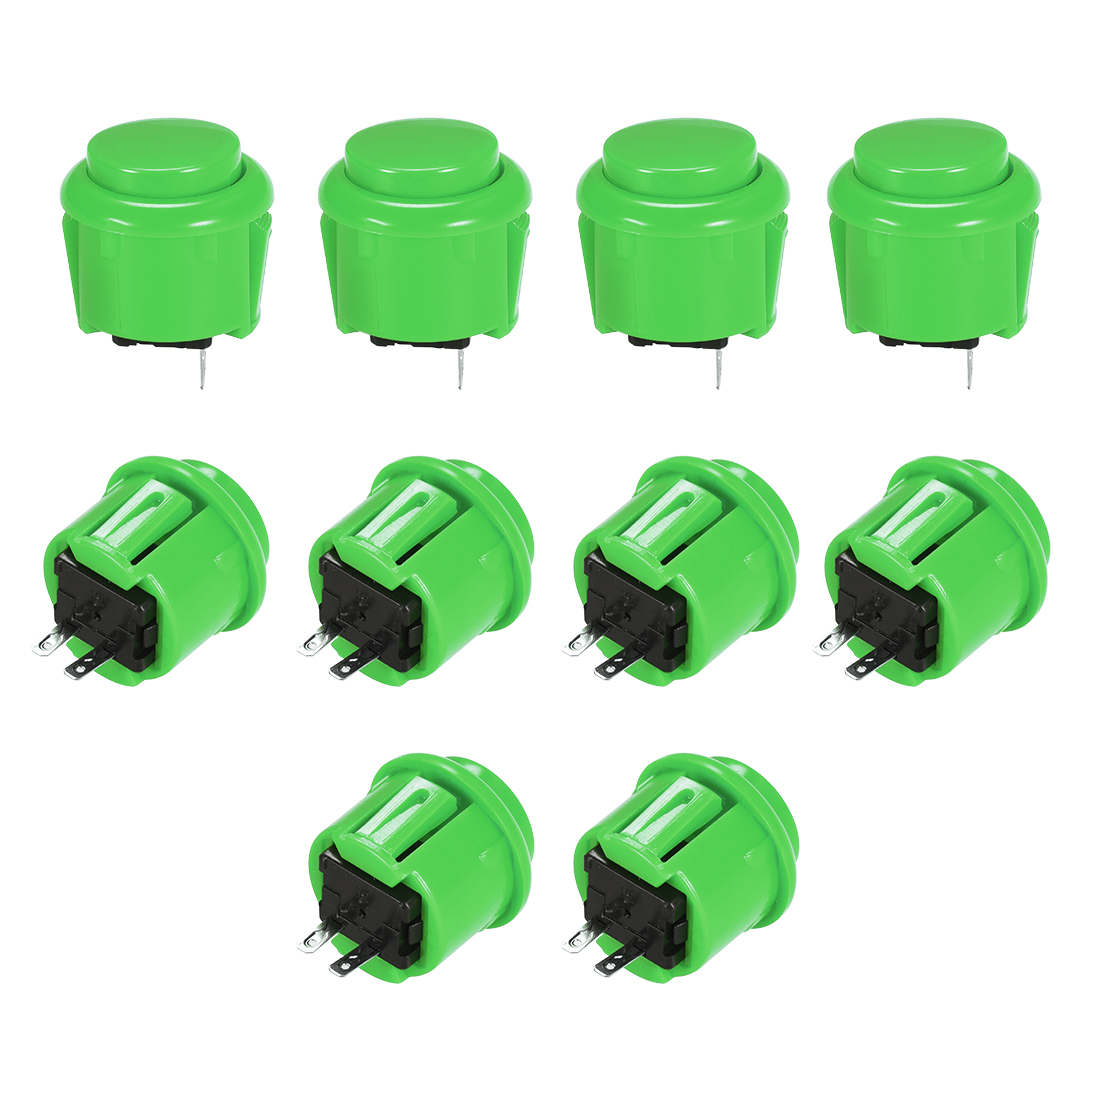 23mm Momentary Game Push Button Switch for Arcade Video Games Green 10pcs